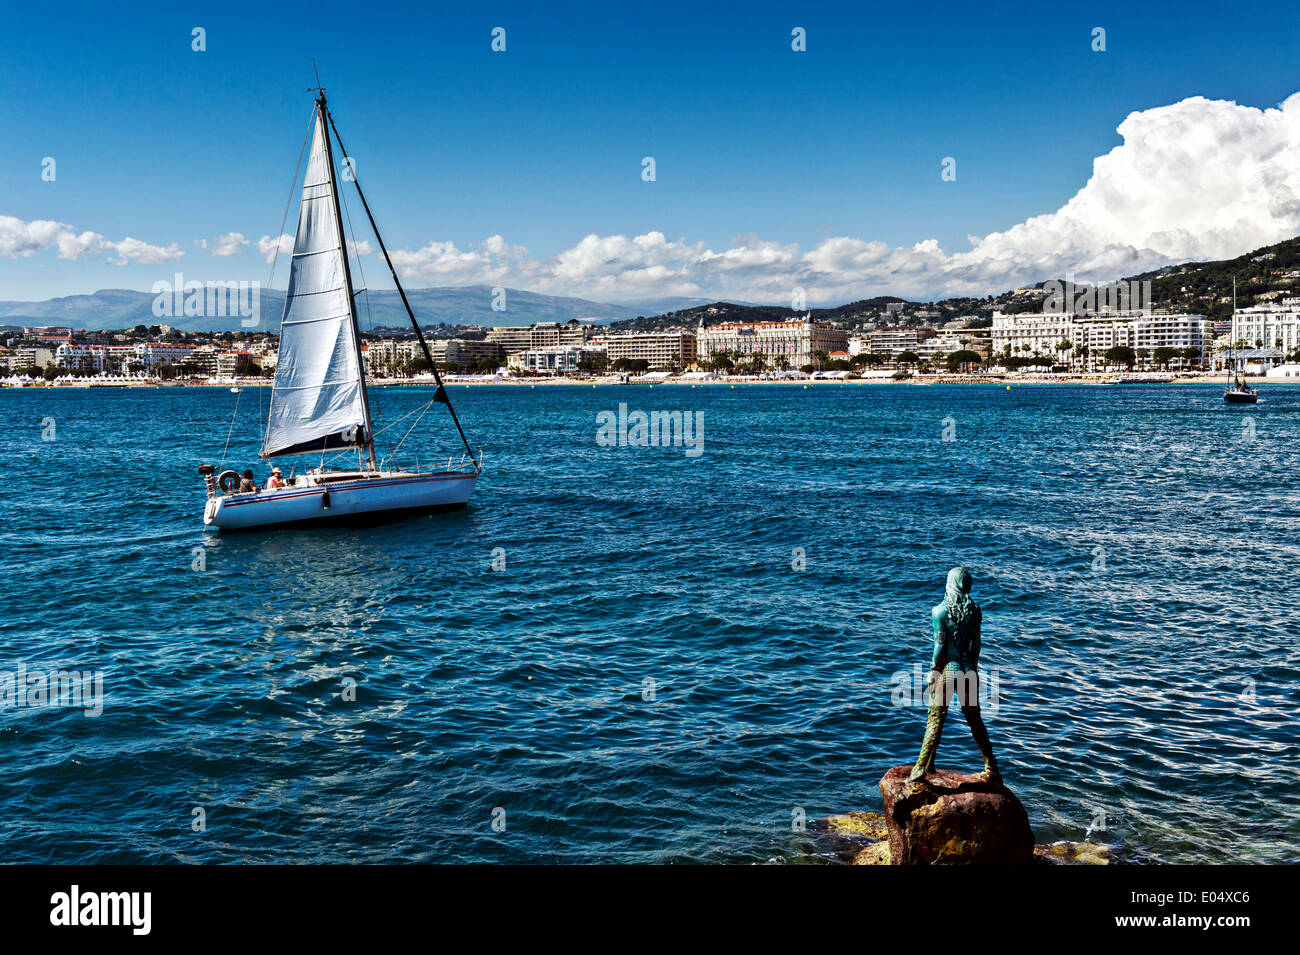 Europe, France, Alpes-Maritimes, Cannes. The vigie. - Stock Image